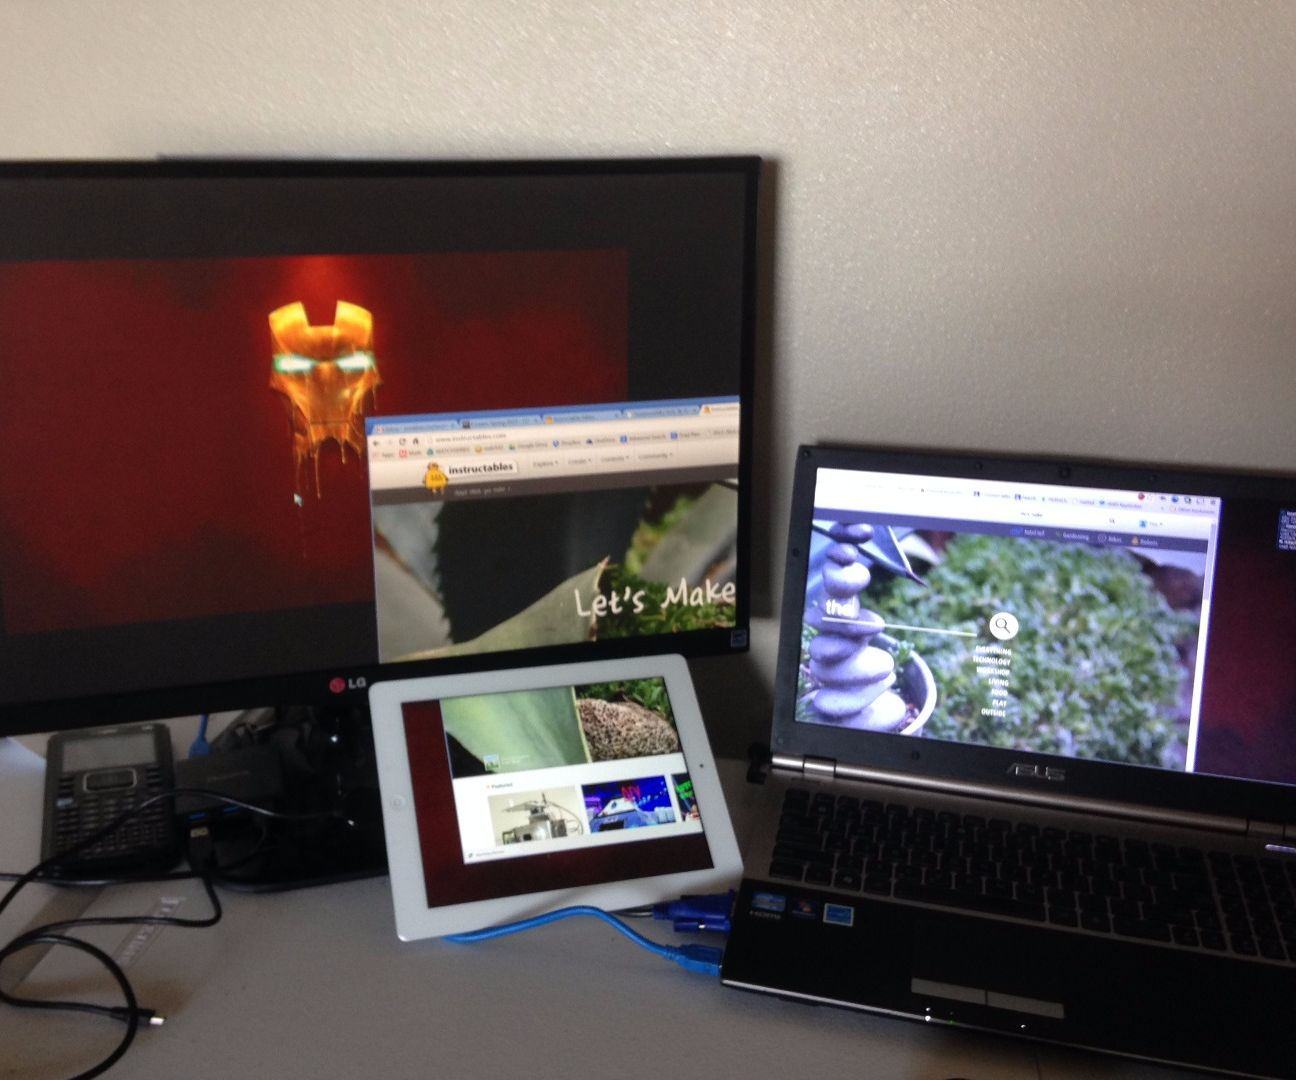 Tablet Second Monitor: 5 Steps (with Pictures)